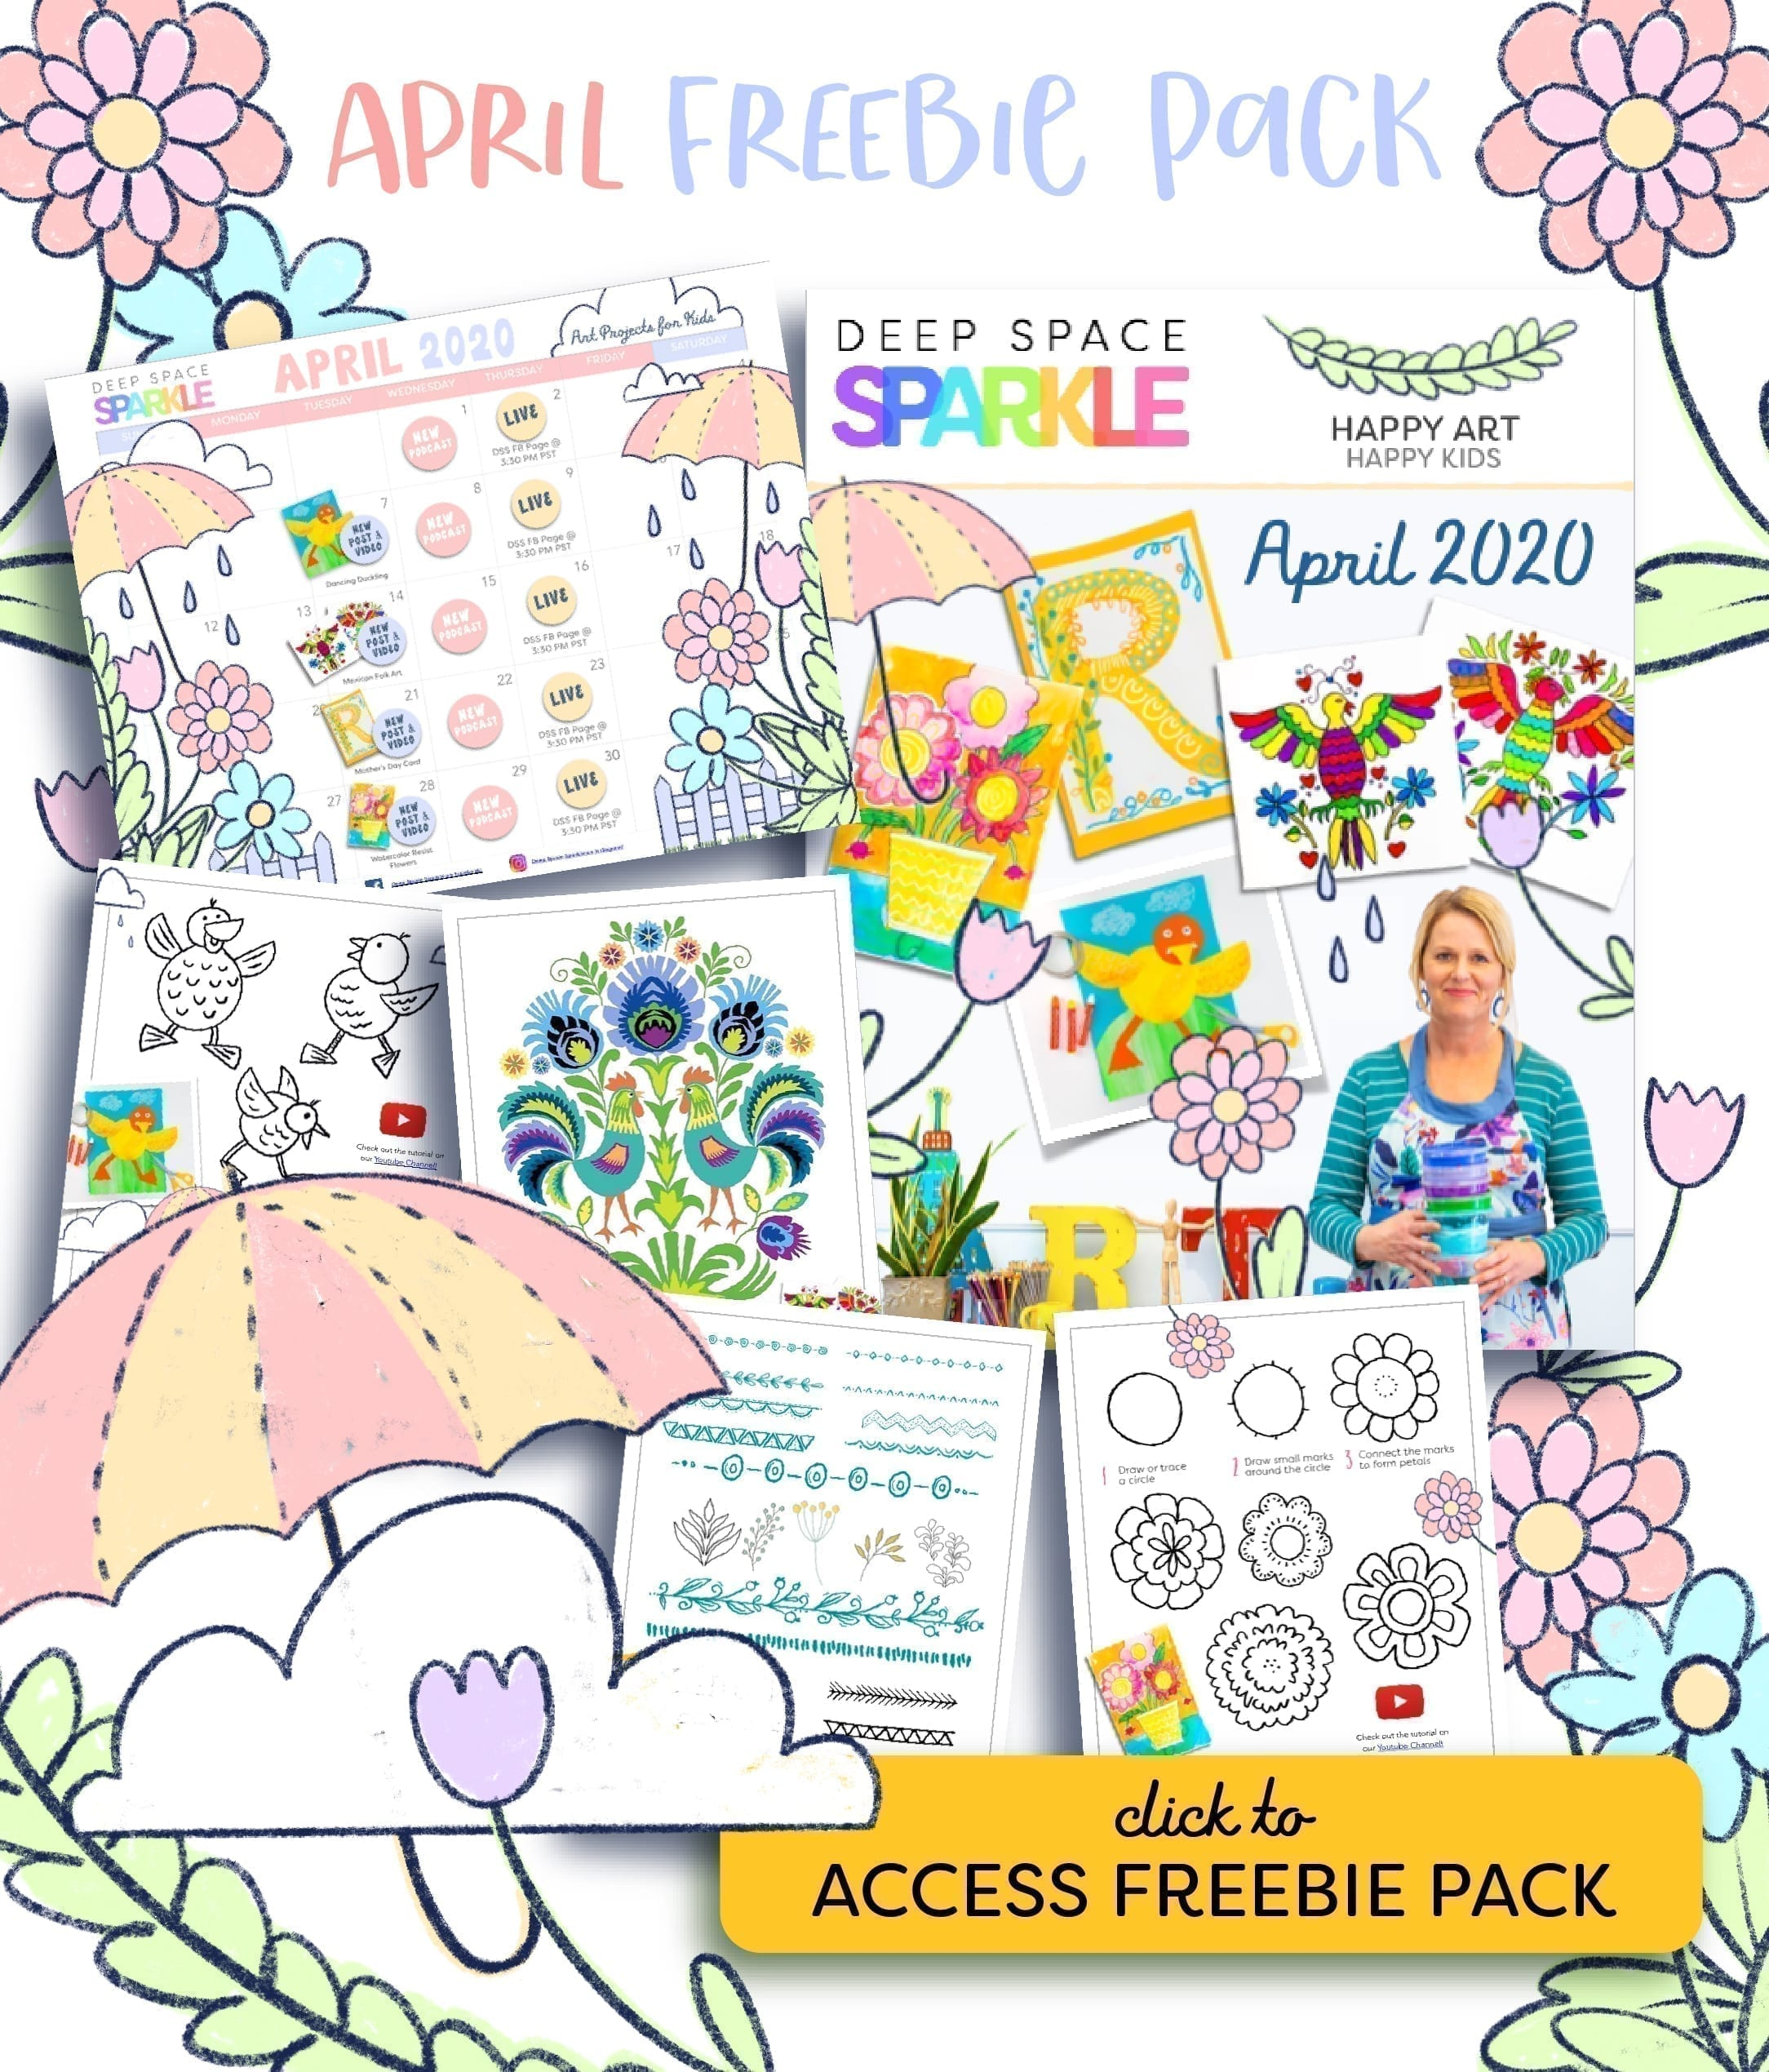 april freebie pack free art lesson for children kids students